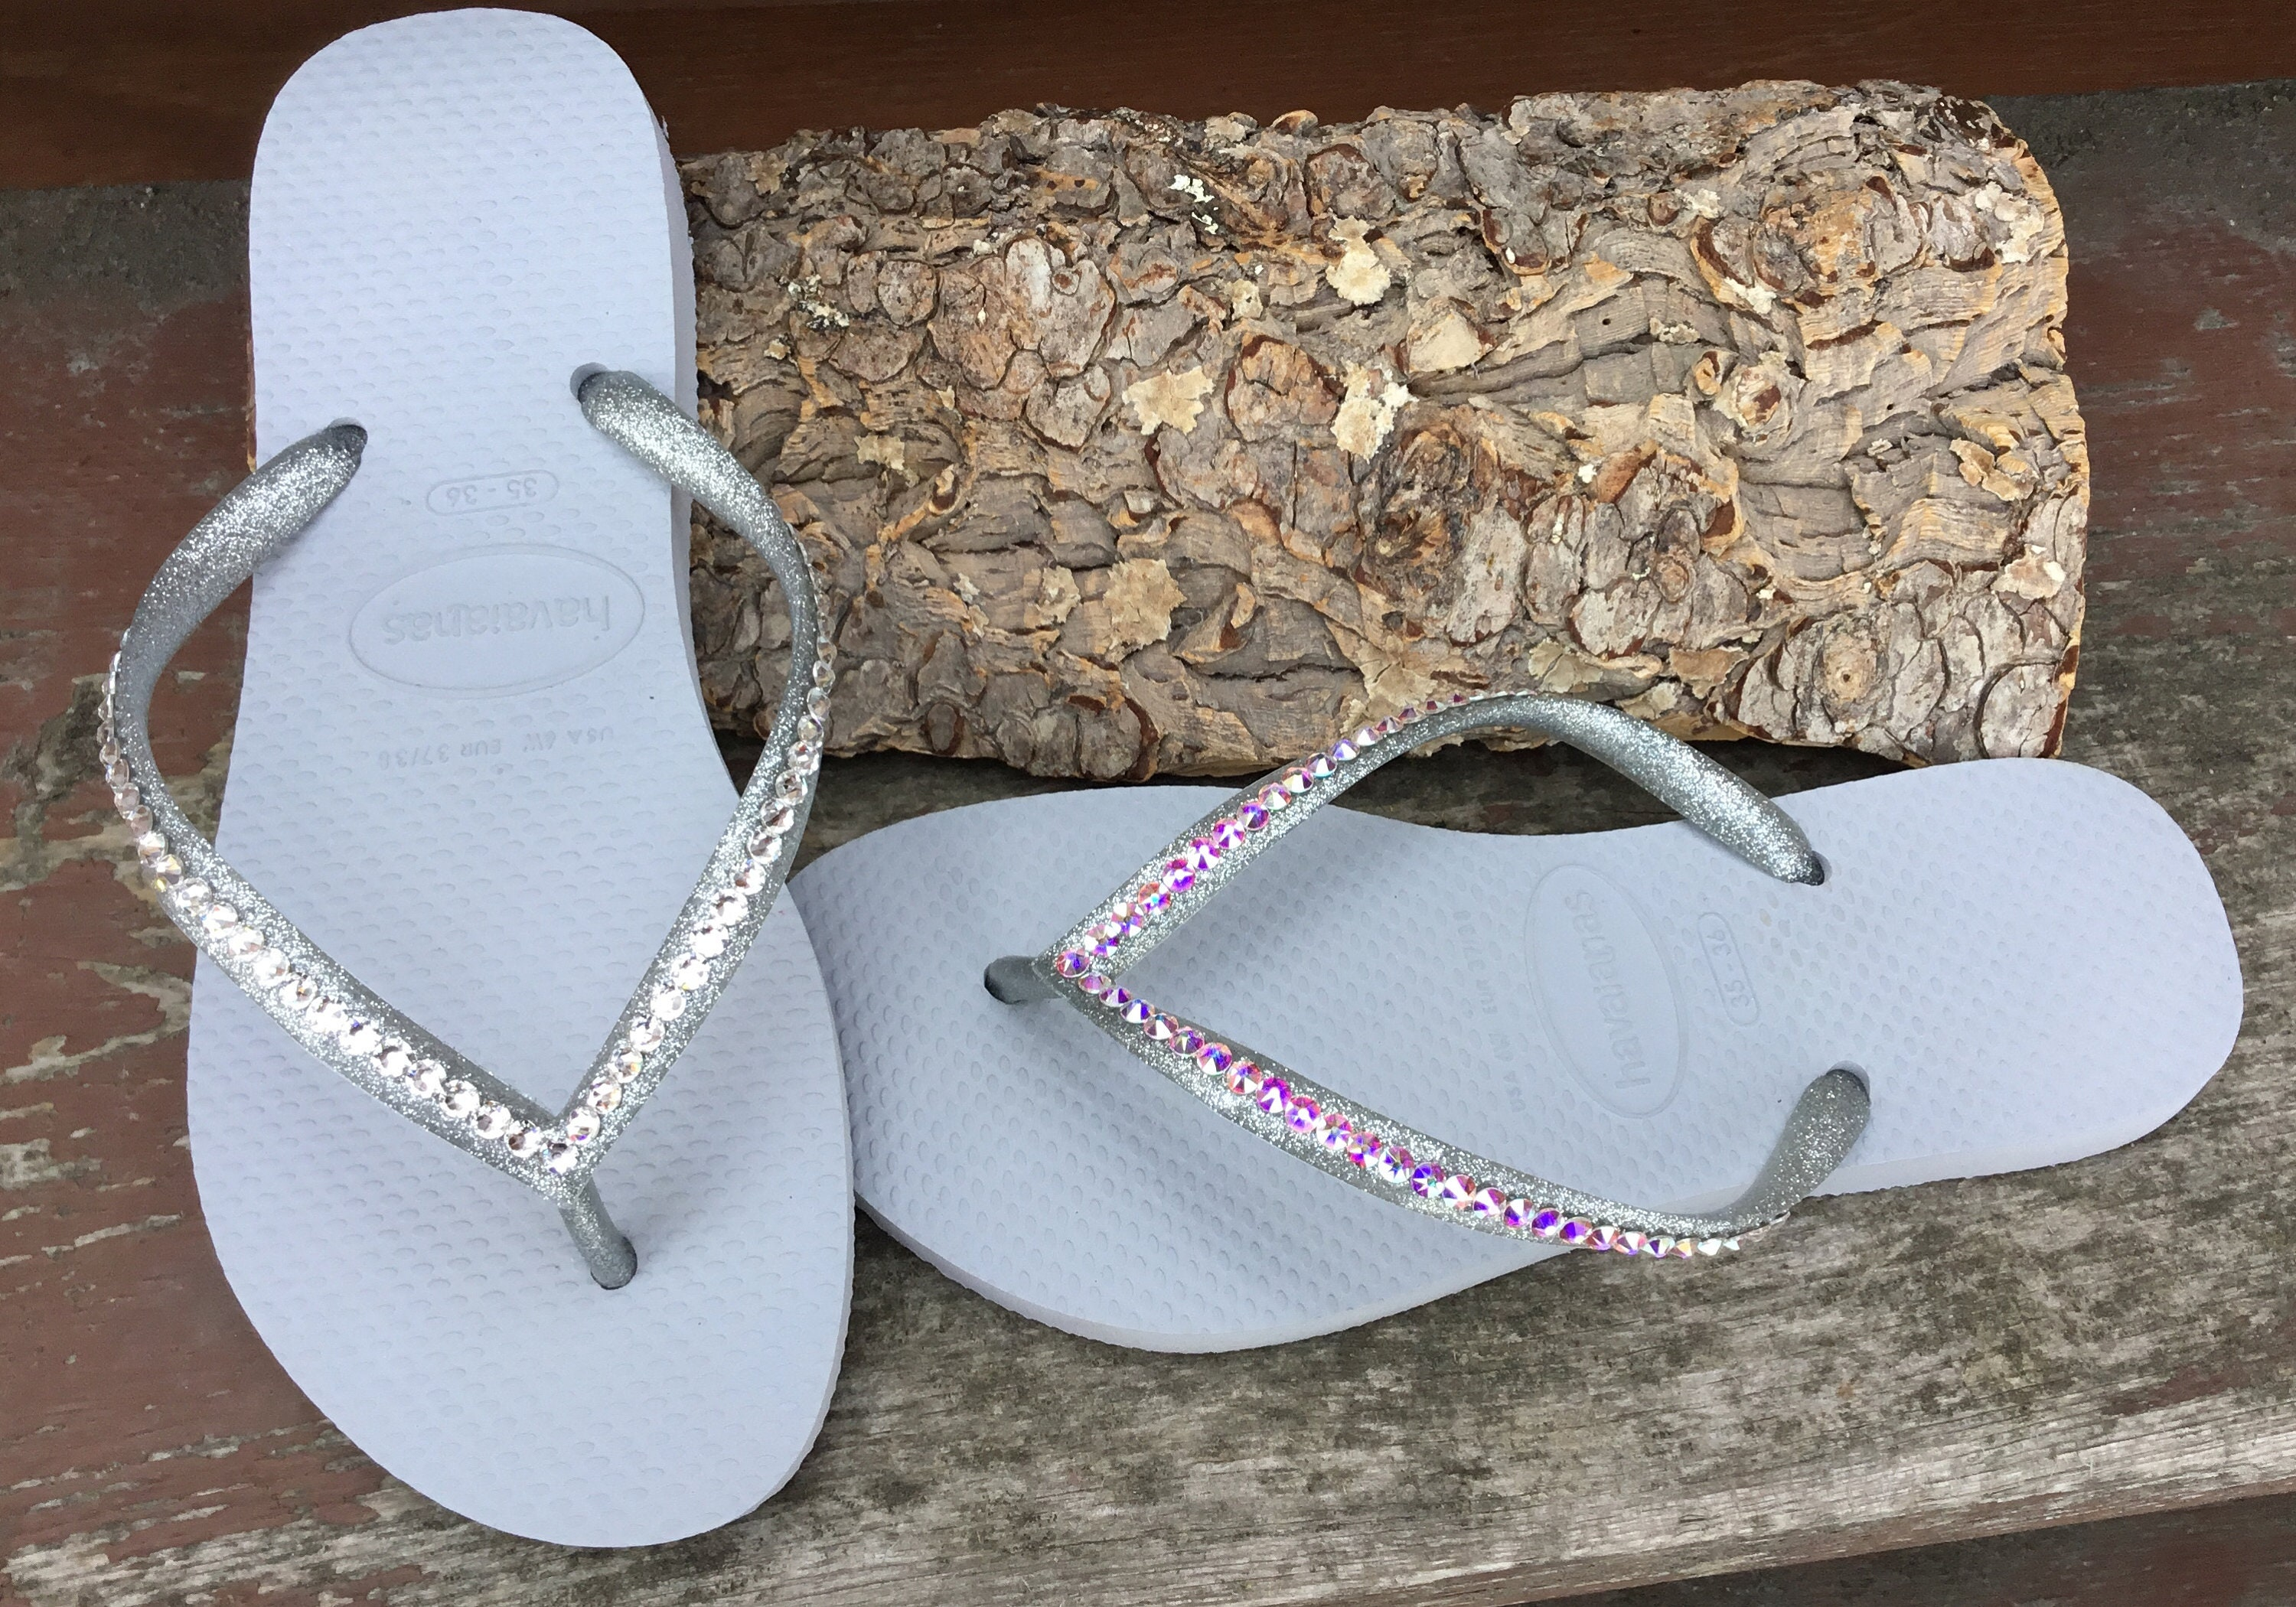 6e5a56ba9 Custom Havaianas Slim Flip Flops Silver Gray Glitter Grey w  Swarovski  Crystal AB Jewels Bling Sandals Rhinestone Beach Wedding Bridal Shoes